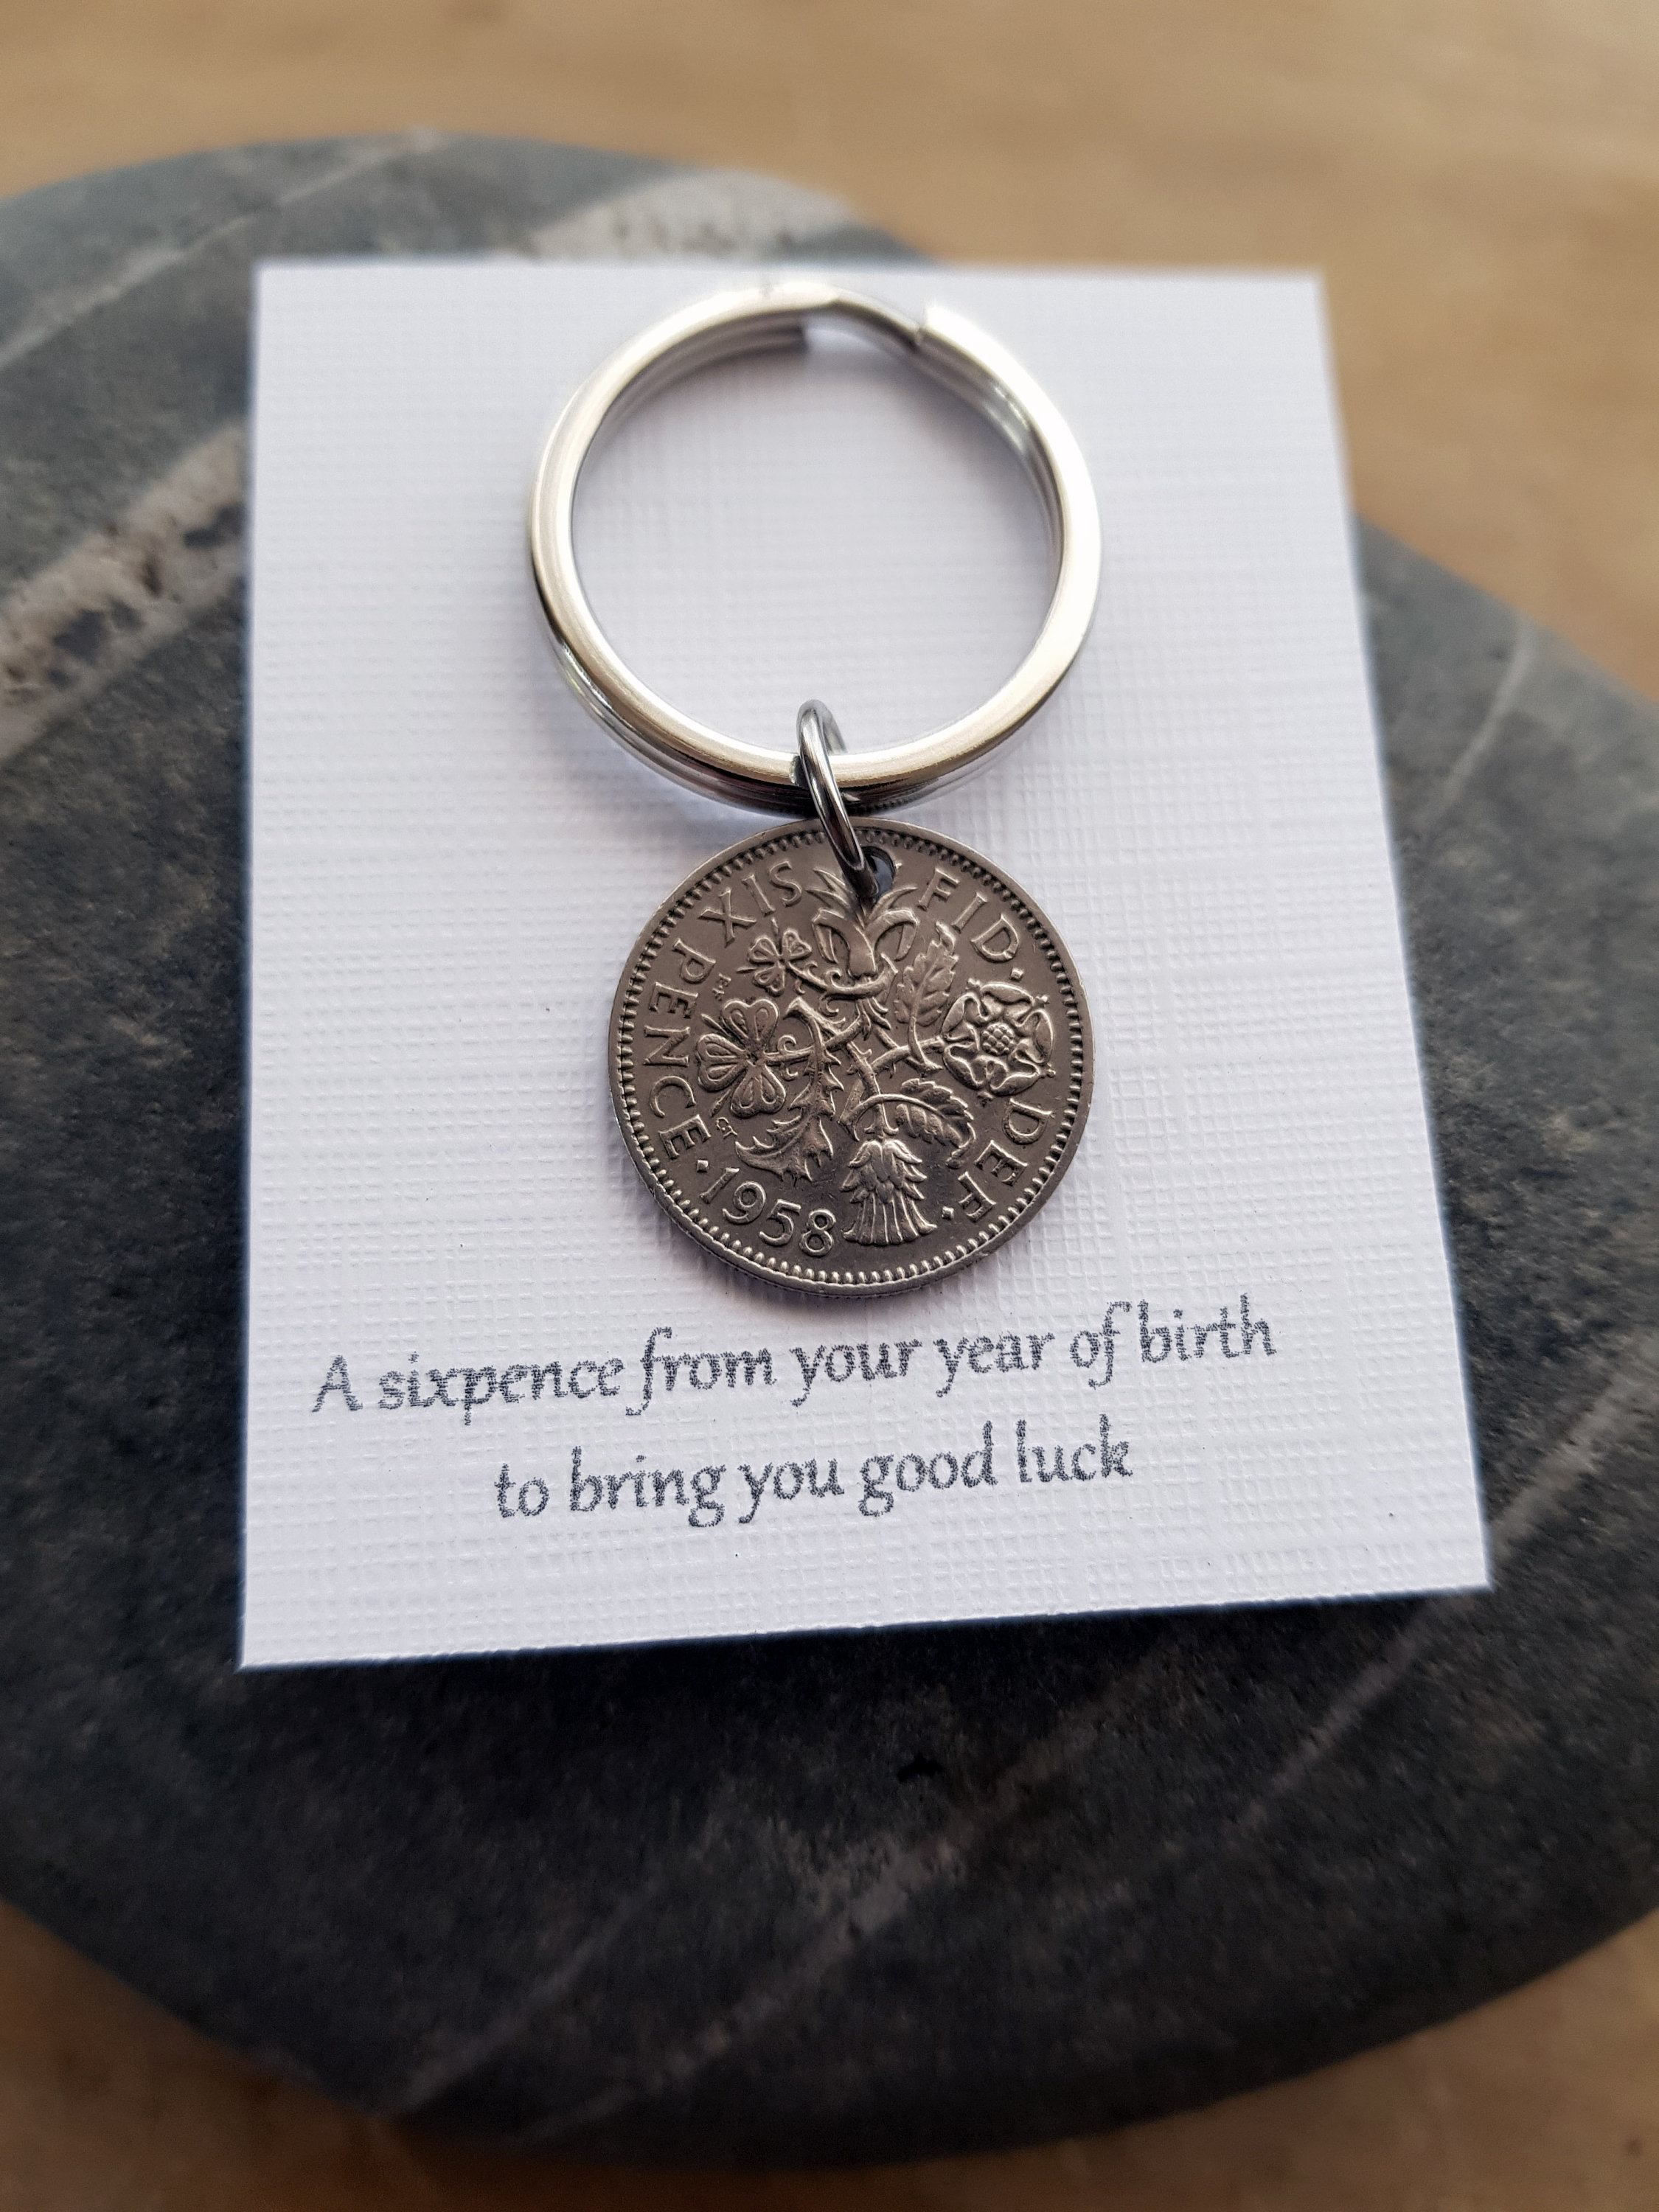 Birth Date Keyring 1958 Lucky Sixpence Birthday Gift For Men Year Of Dads Grandad Grandma